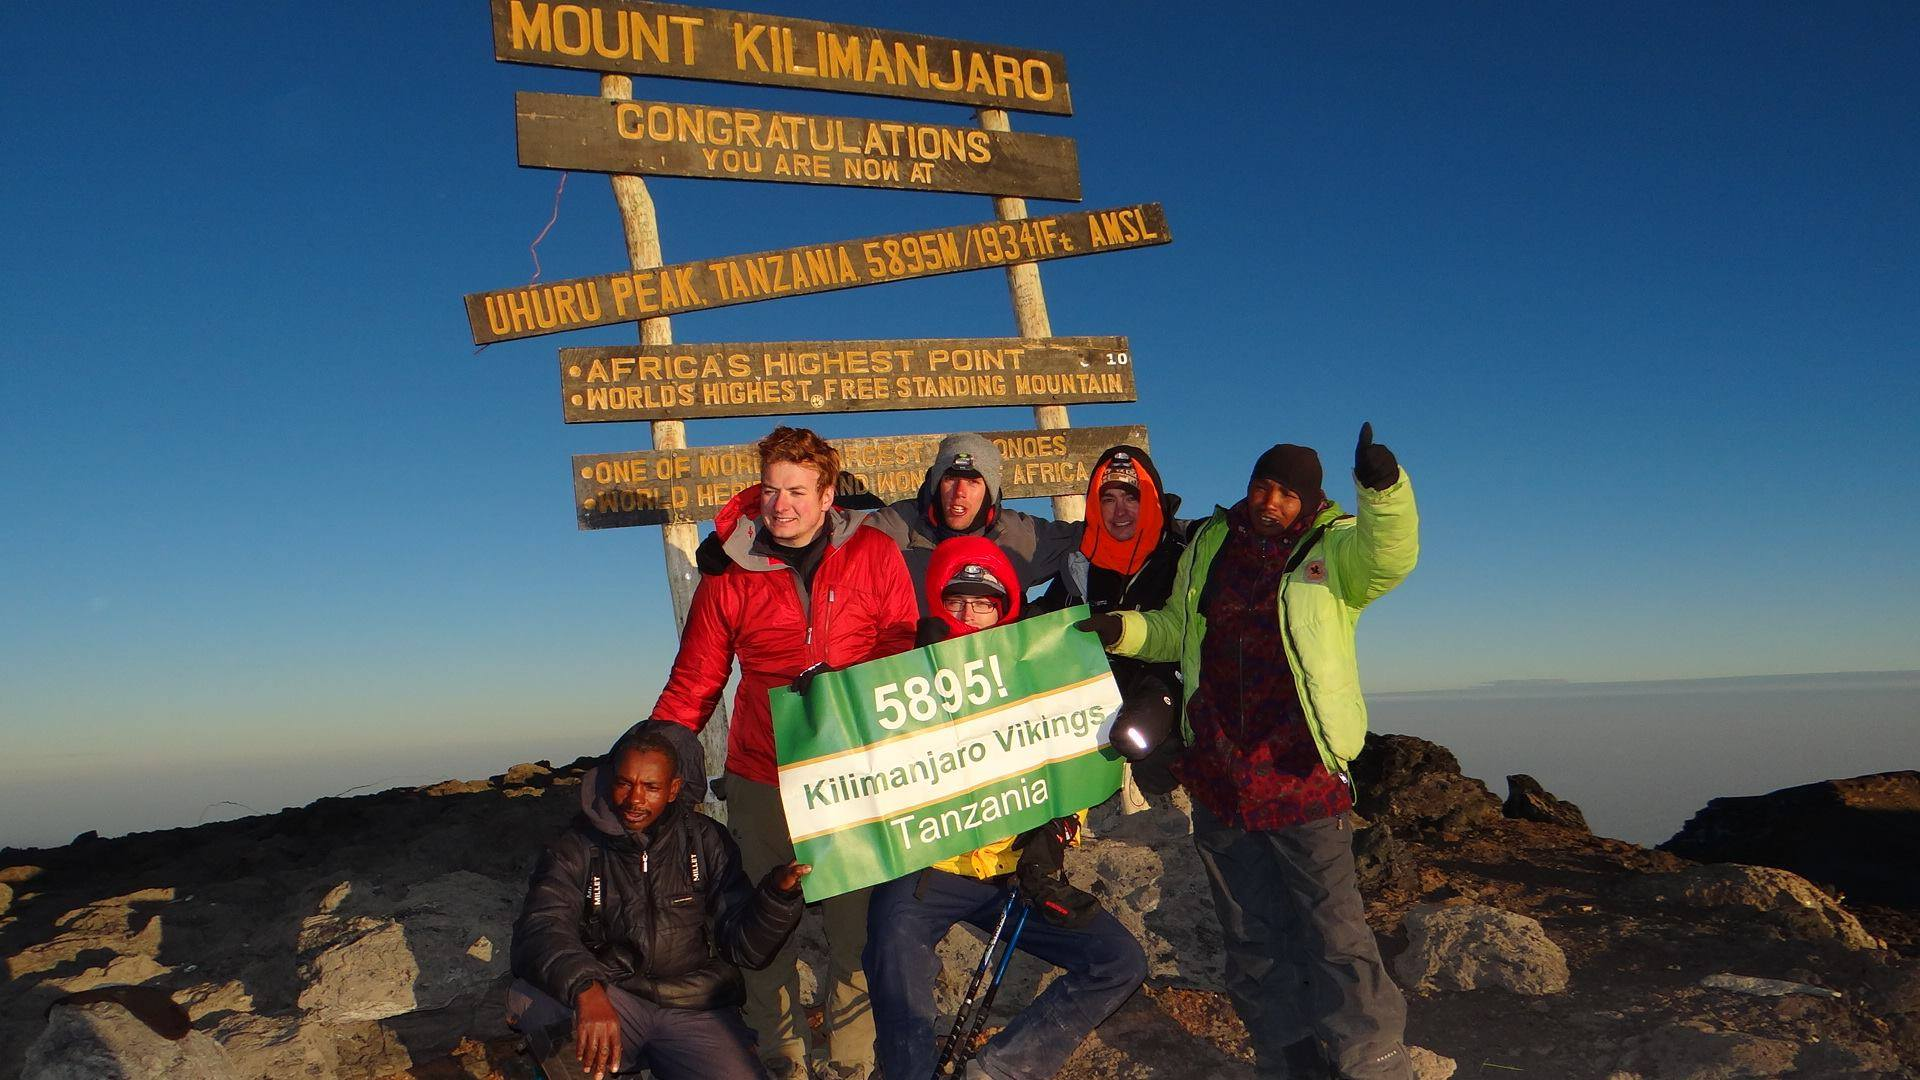 Get in touch with the team at Kilimanjaro Vikings